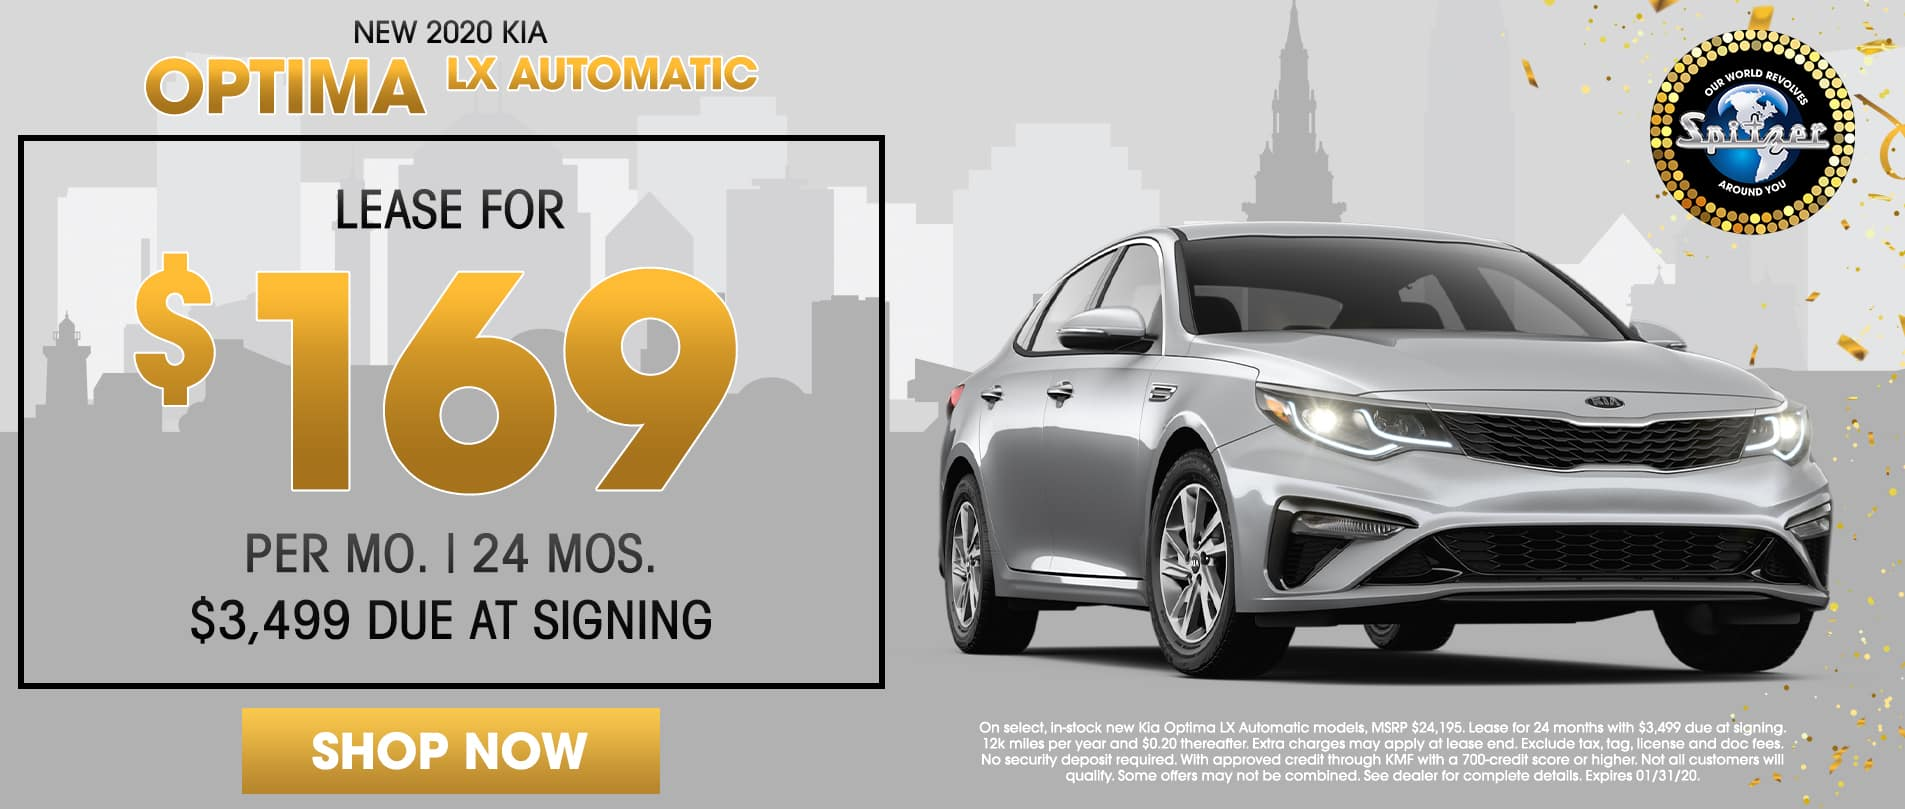 Optima | Lease for $169 per mo